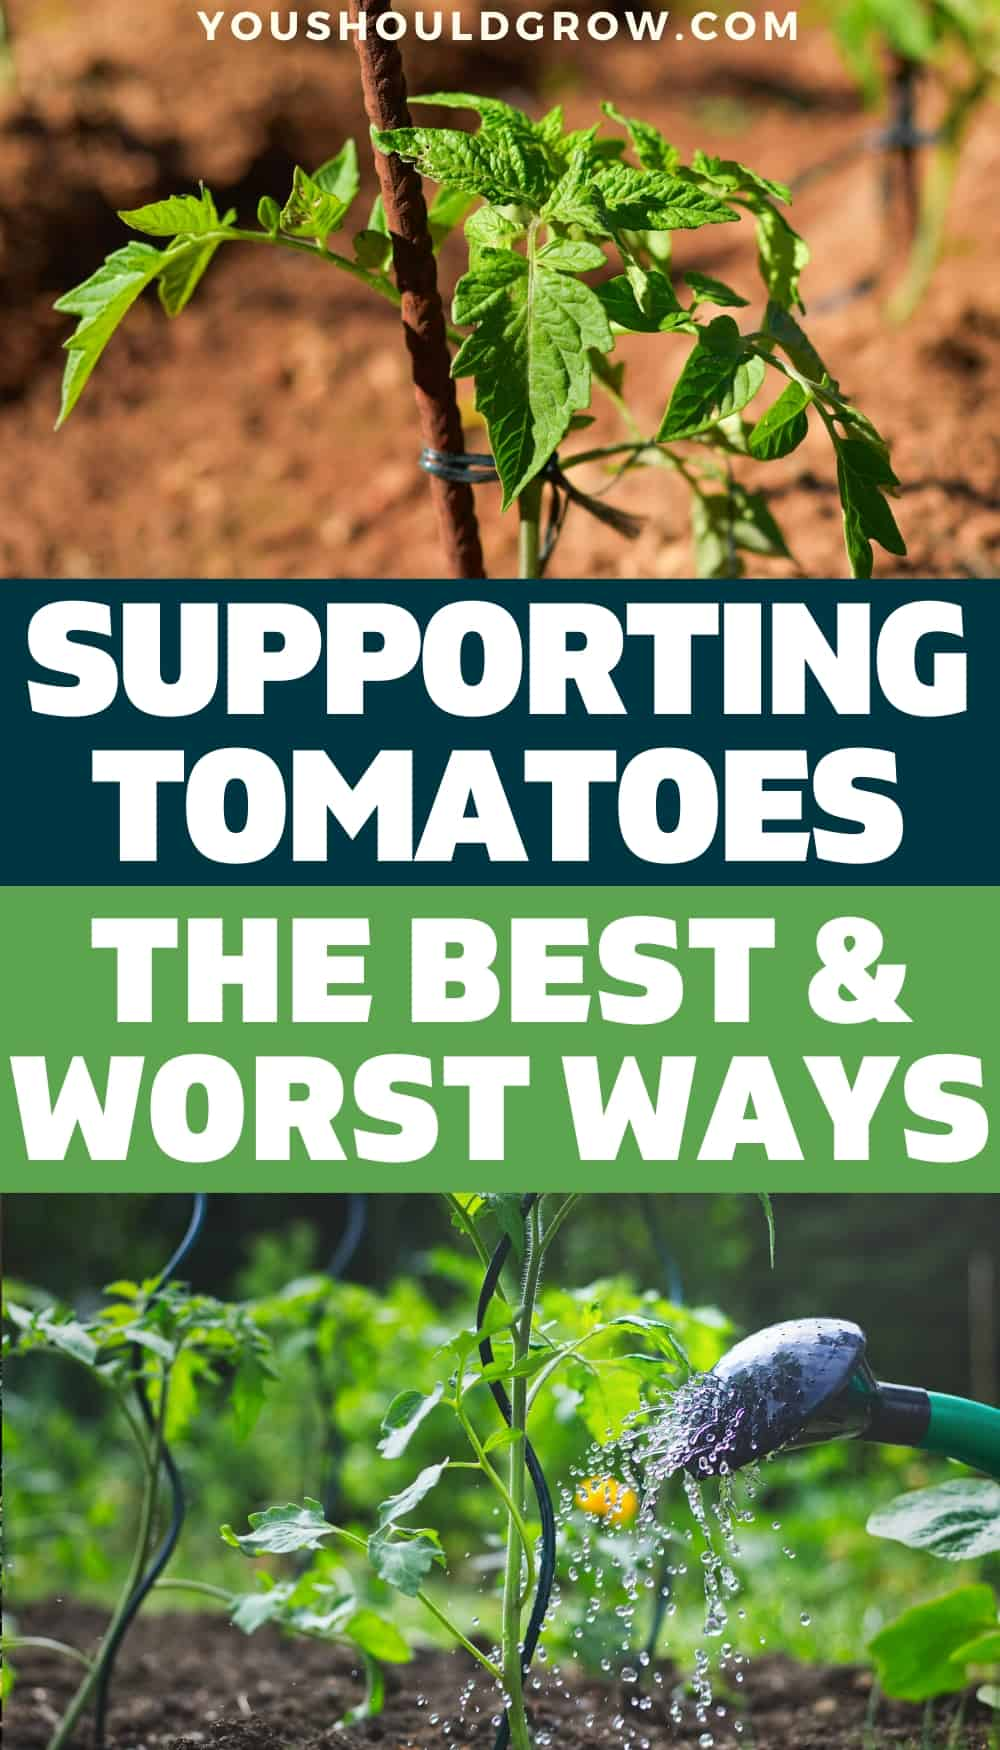 Growing tomatoes in your vegetable garden means you get to enjoy a summer full of your own organic tomatoes. Supporting tomatoes to keep them off the ground is the best way to keep healthy plants and get more tomatoes. Looking for tomato trellis ideas to try this season in your vegetable garden? Here are the best and worst ways to stake your tomato plants.